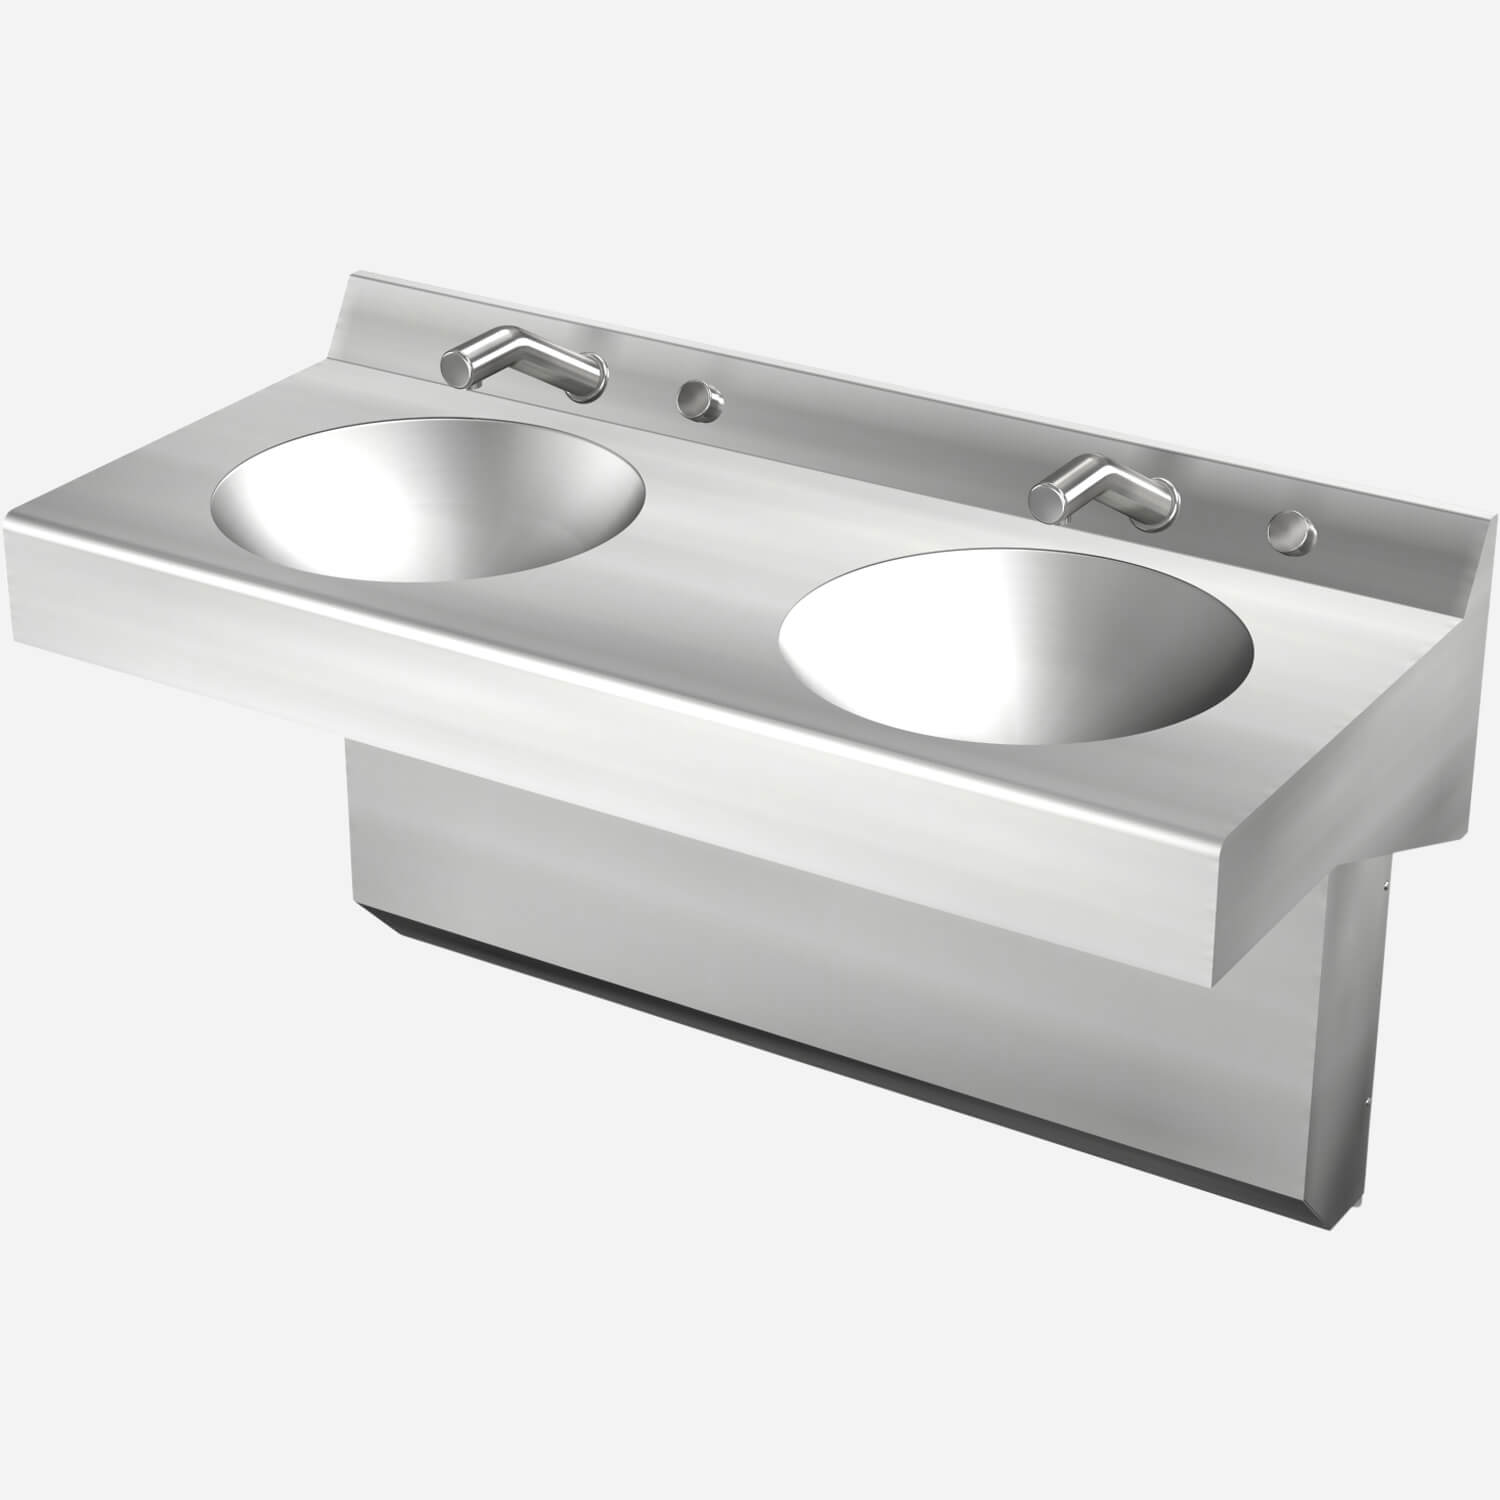 Two Station Straight Front Stainless Steel Wash Basin